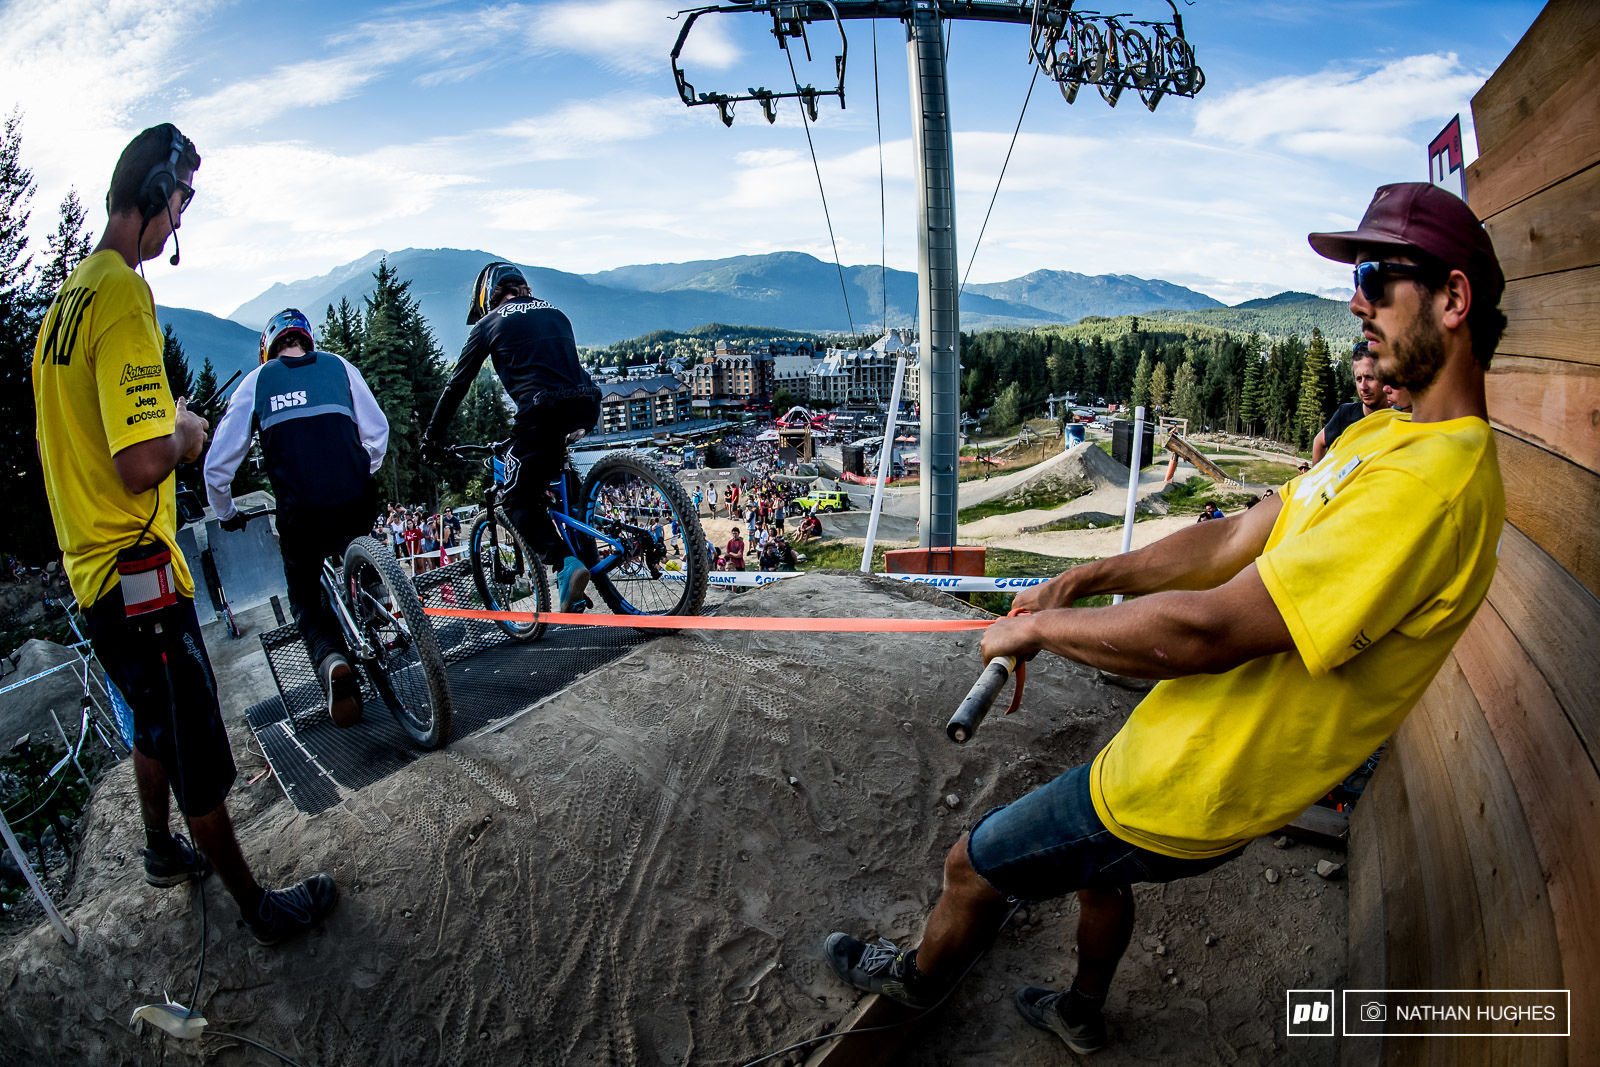 With a pneumatic gate fail the Crankworx team had to go full manual.